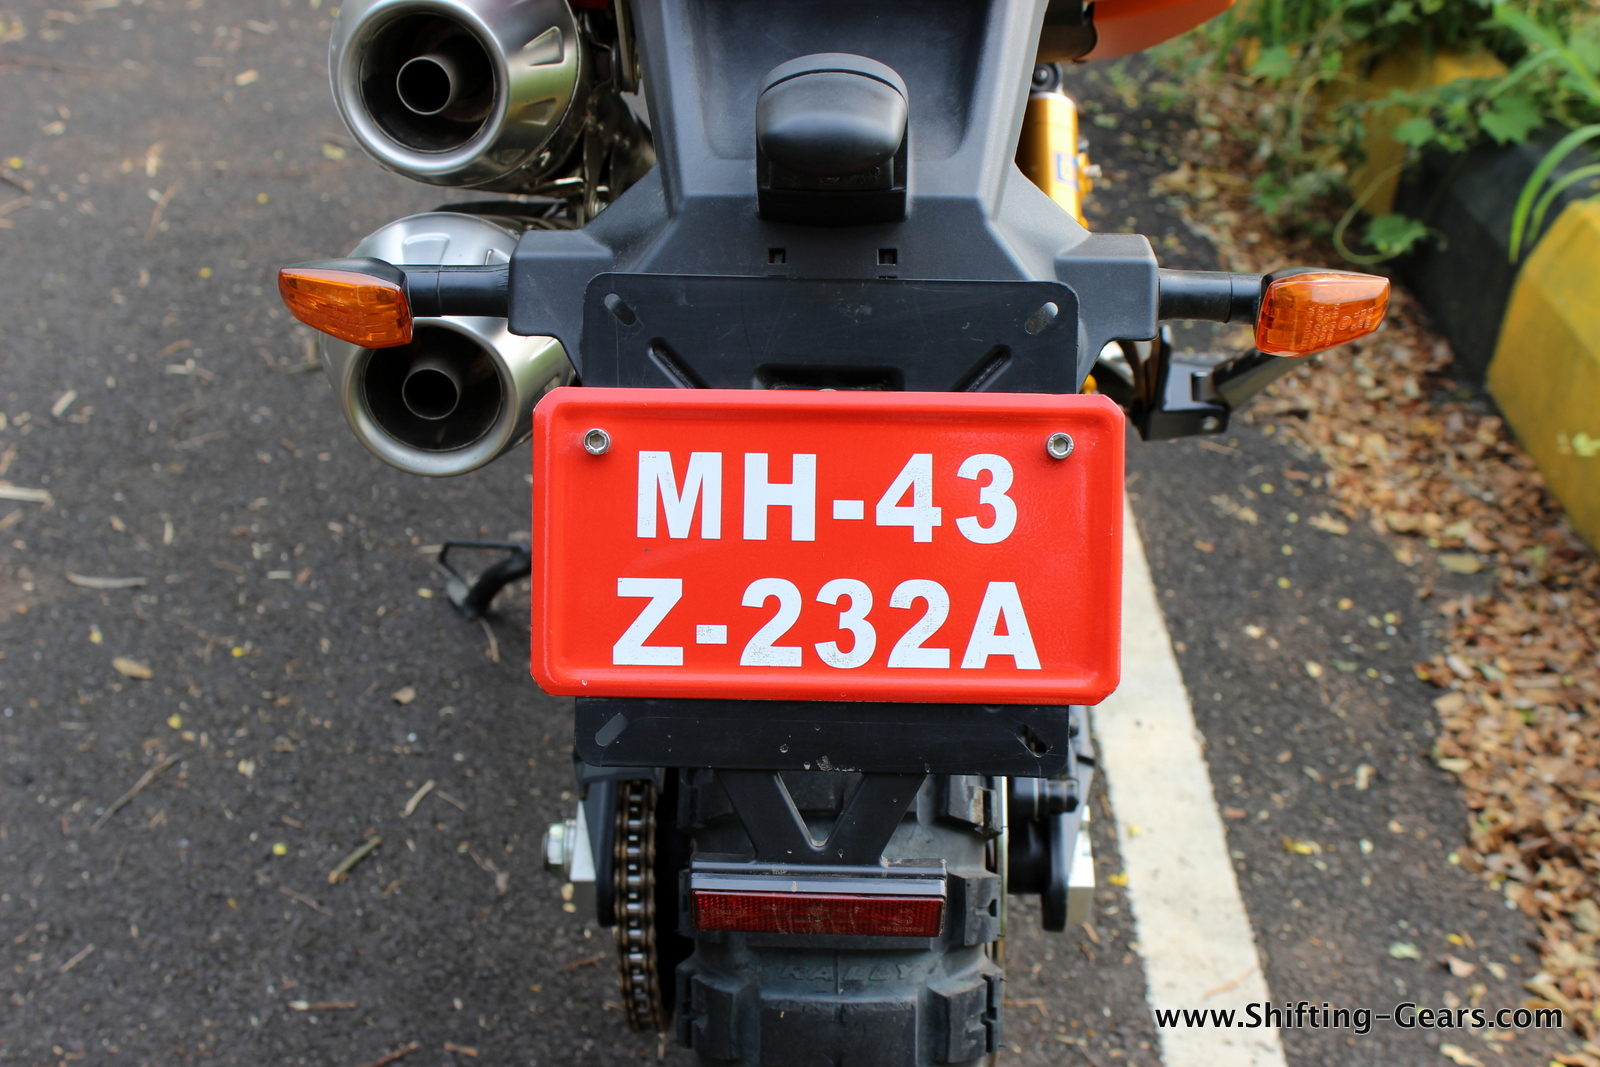 Rear mudguard and the number plate mount